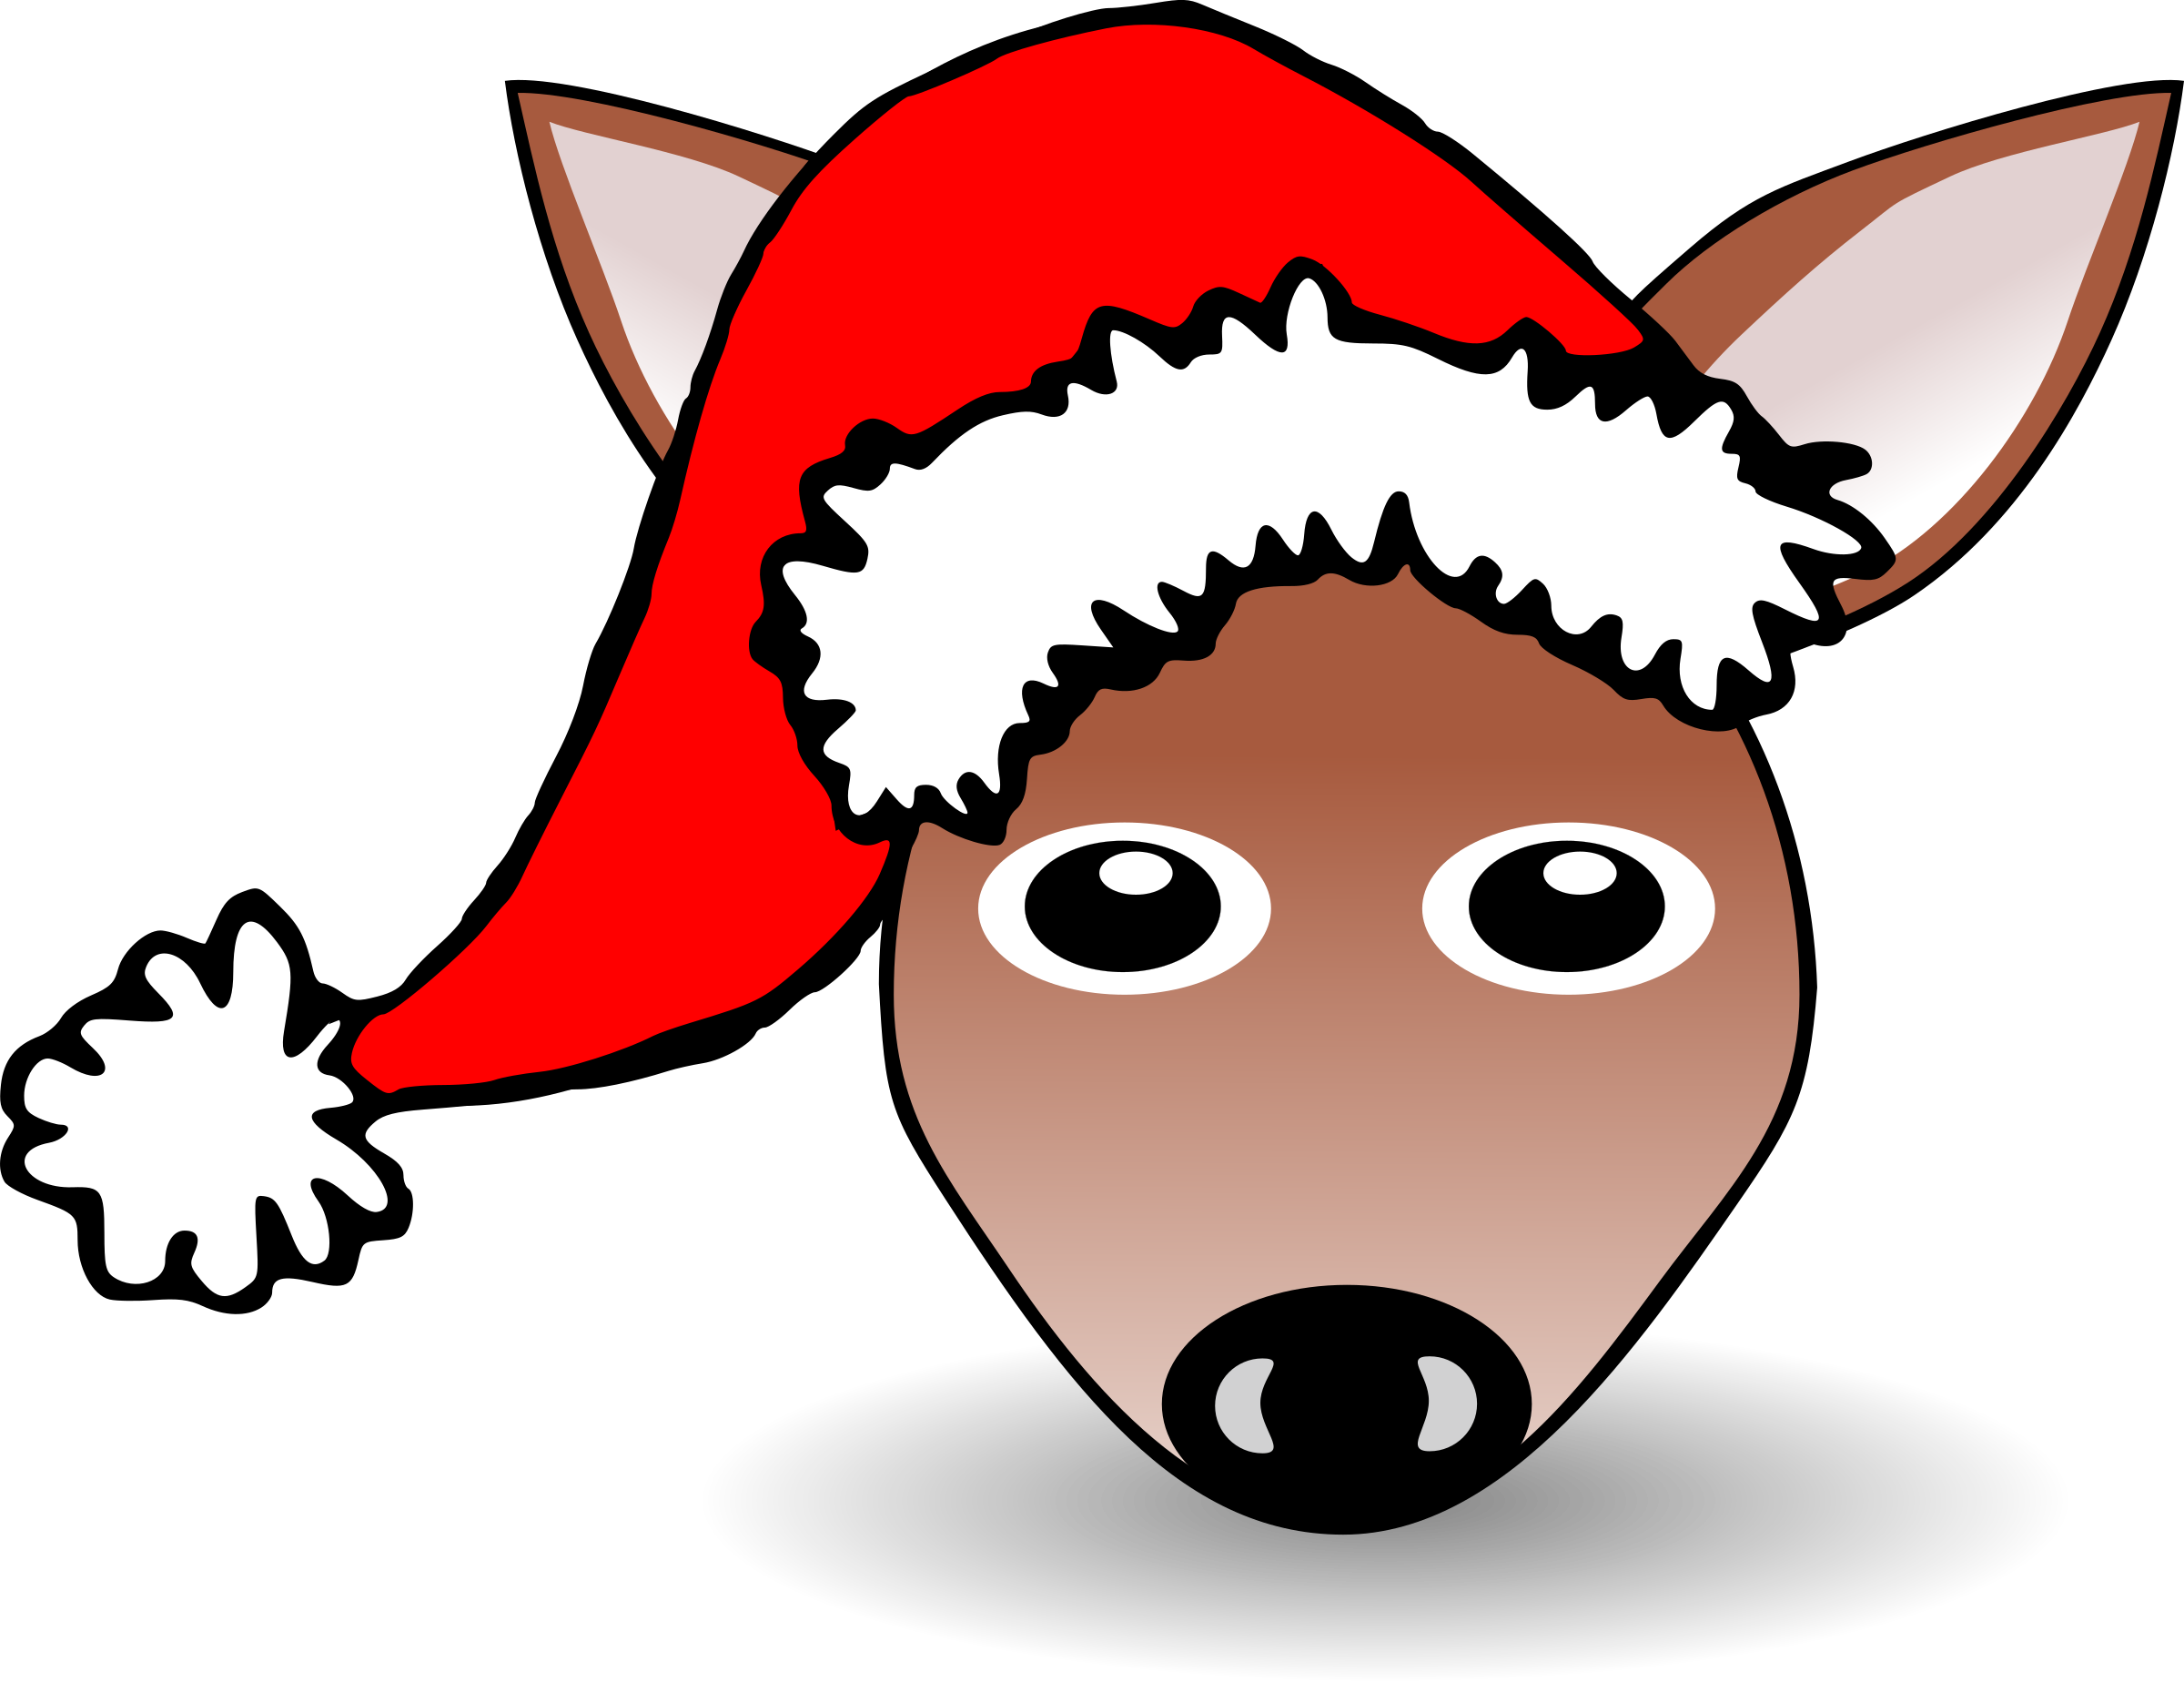 Funny Fawn Face Brown Cartoon with Santa Claus hat by palomaironique